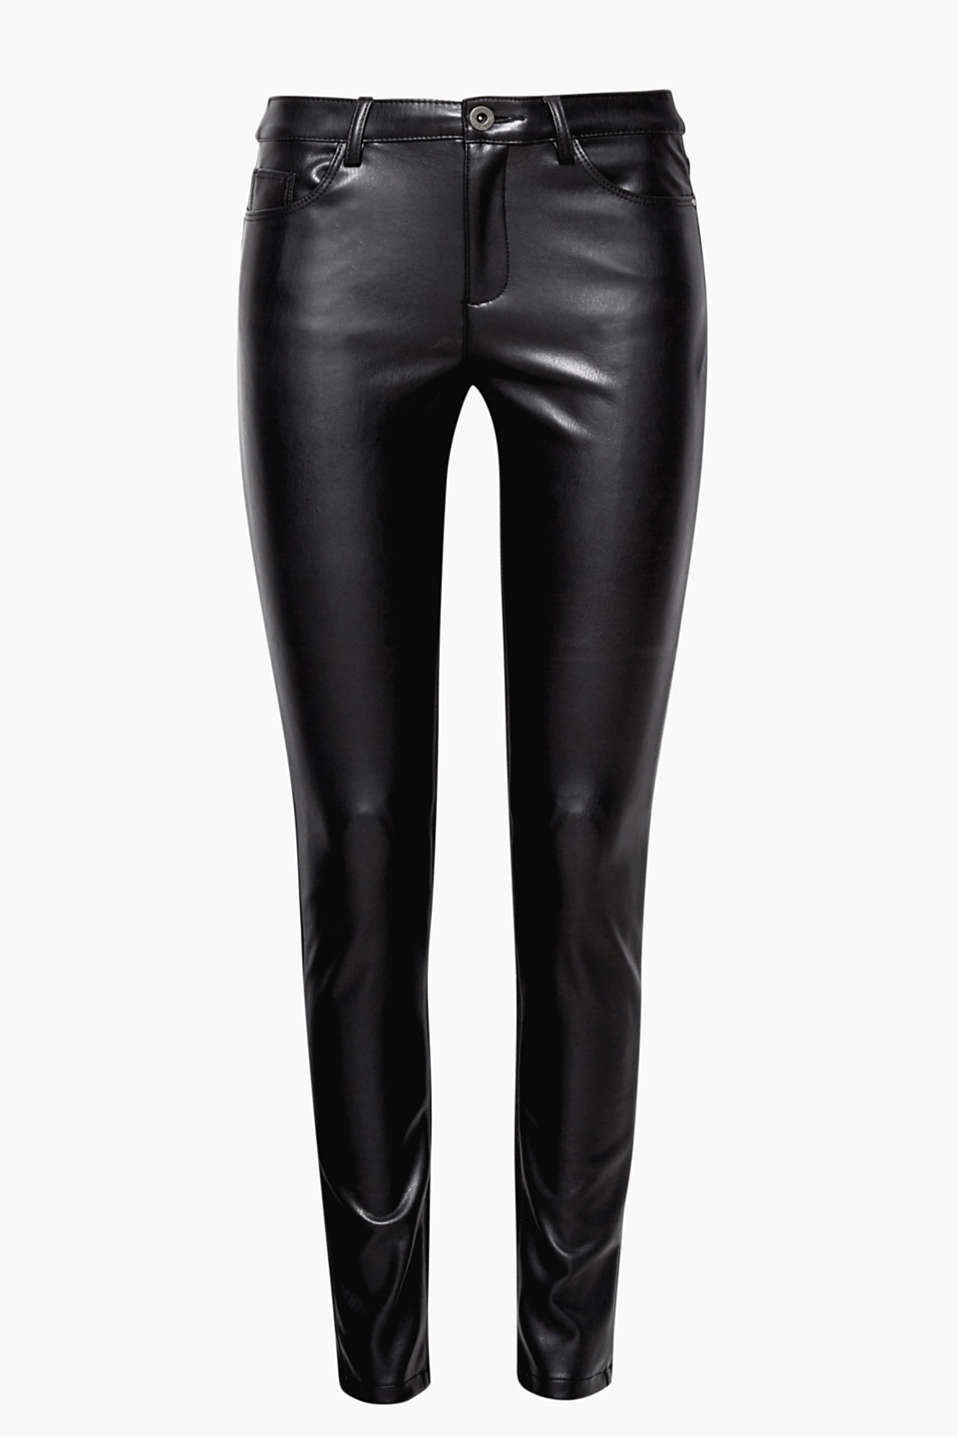 One pair, two styles: these close-fitting trousers come in faux leather at the front + flowing, comfy stretch fabric at the back.